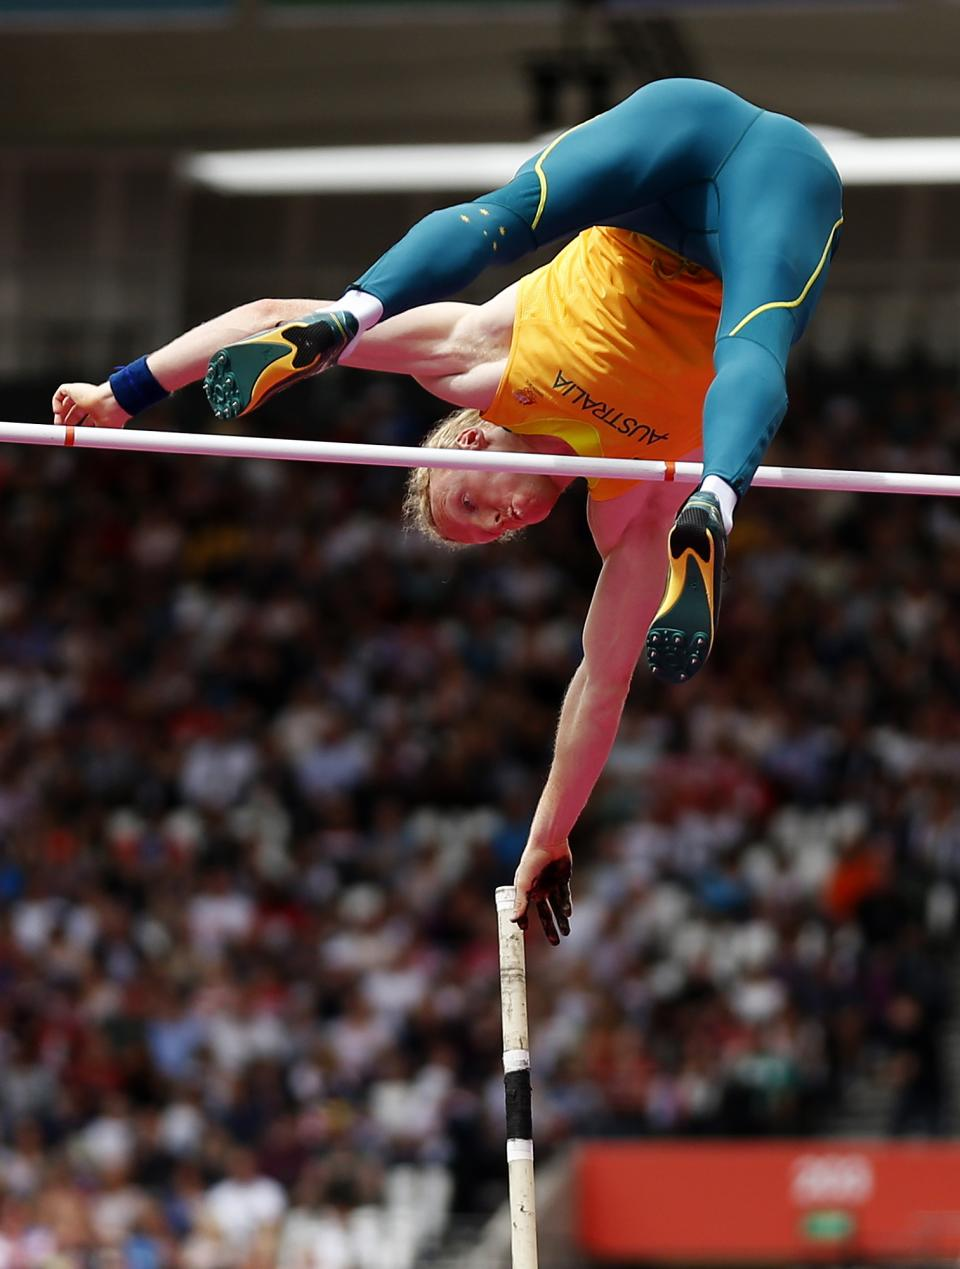 Australia's Steven Hooker competes in a men's pole vault qualification round during the athletics in the Olympic Stadium at the 2012 Summer Olympics, London, Wednesday, Aug. 8, 2012. (AP Photo/Matt Dunham)